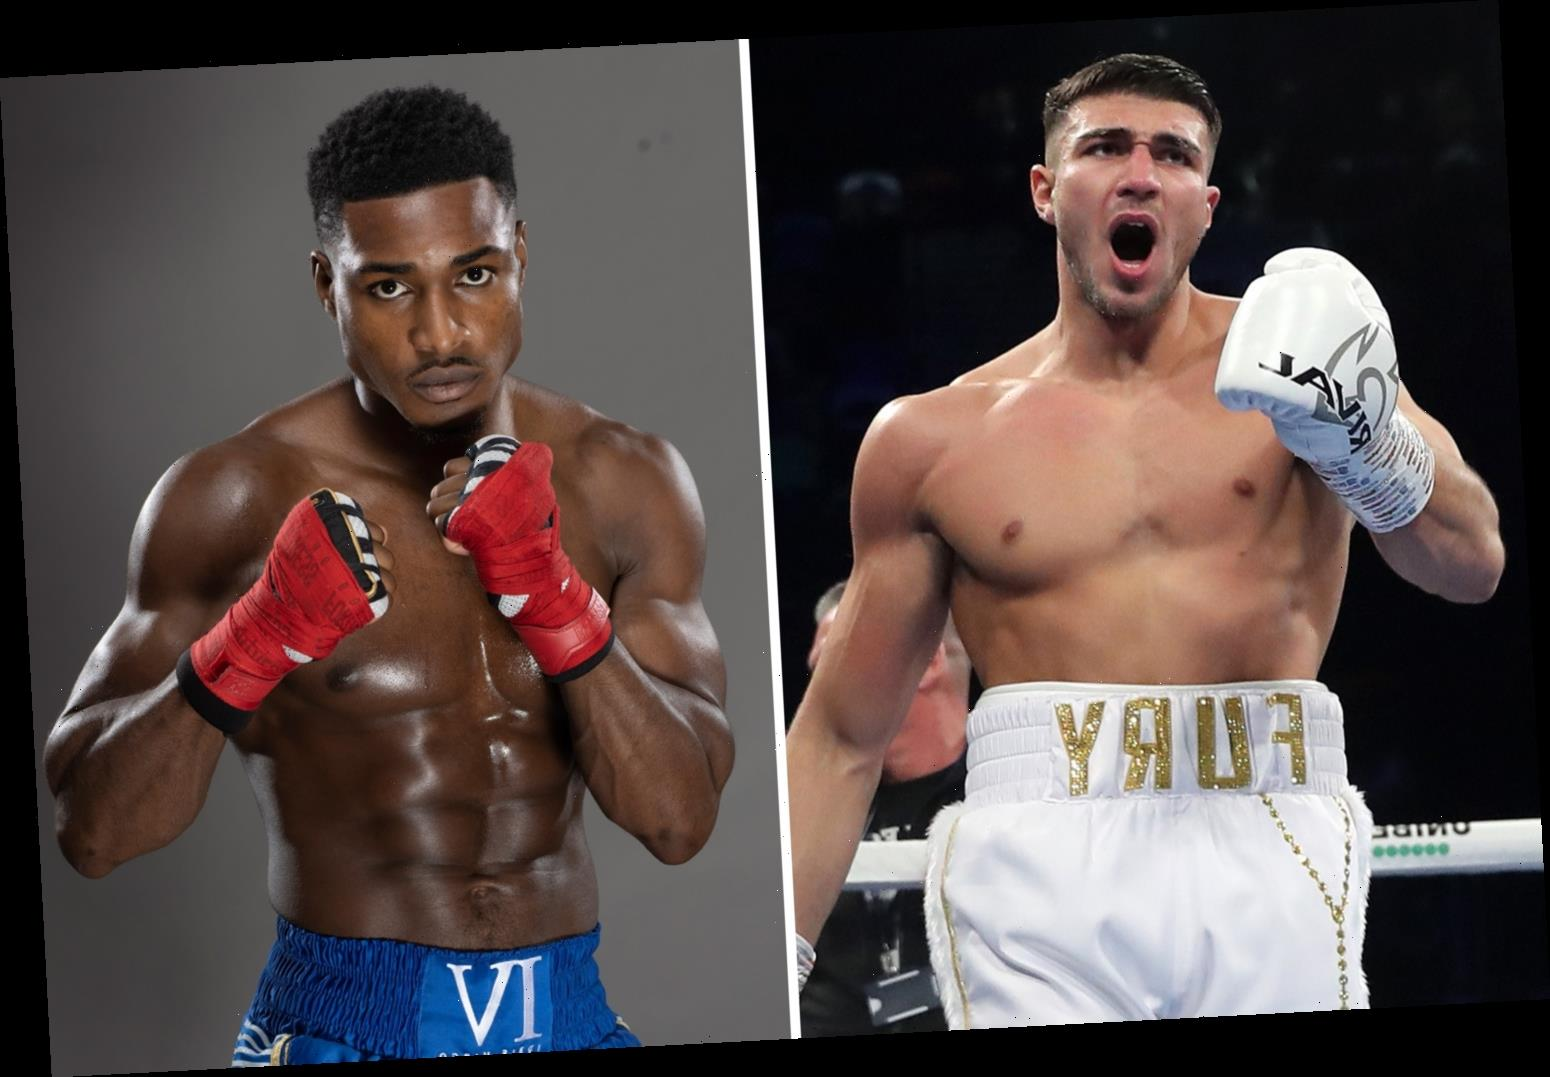 Tommy Fury wouldn't be where he is now without brother Tyson or Love Island, slams fellow reality TV star Idris Virgo